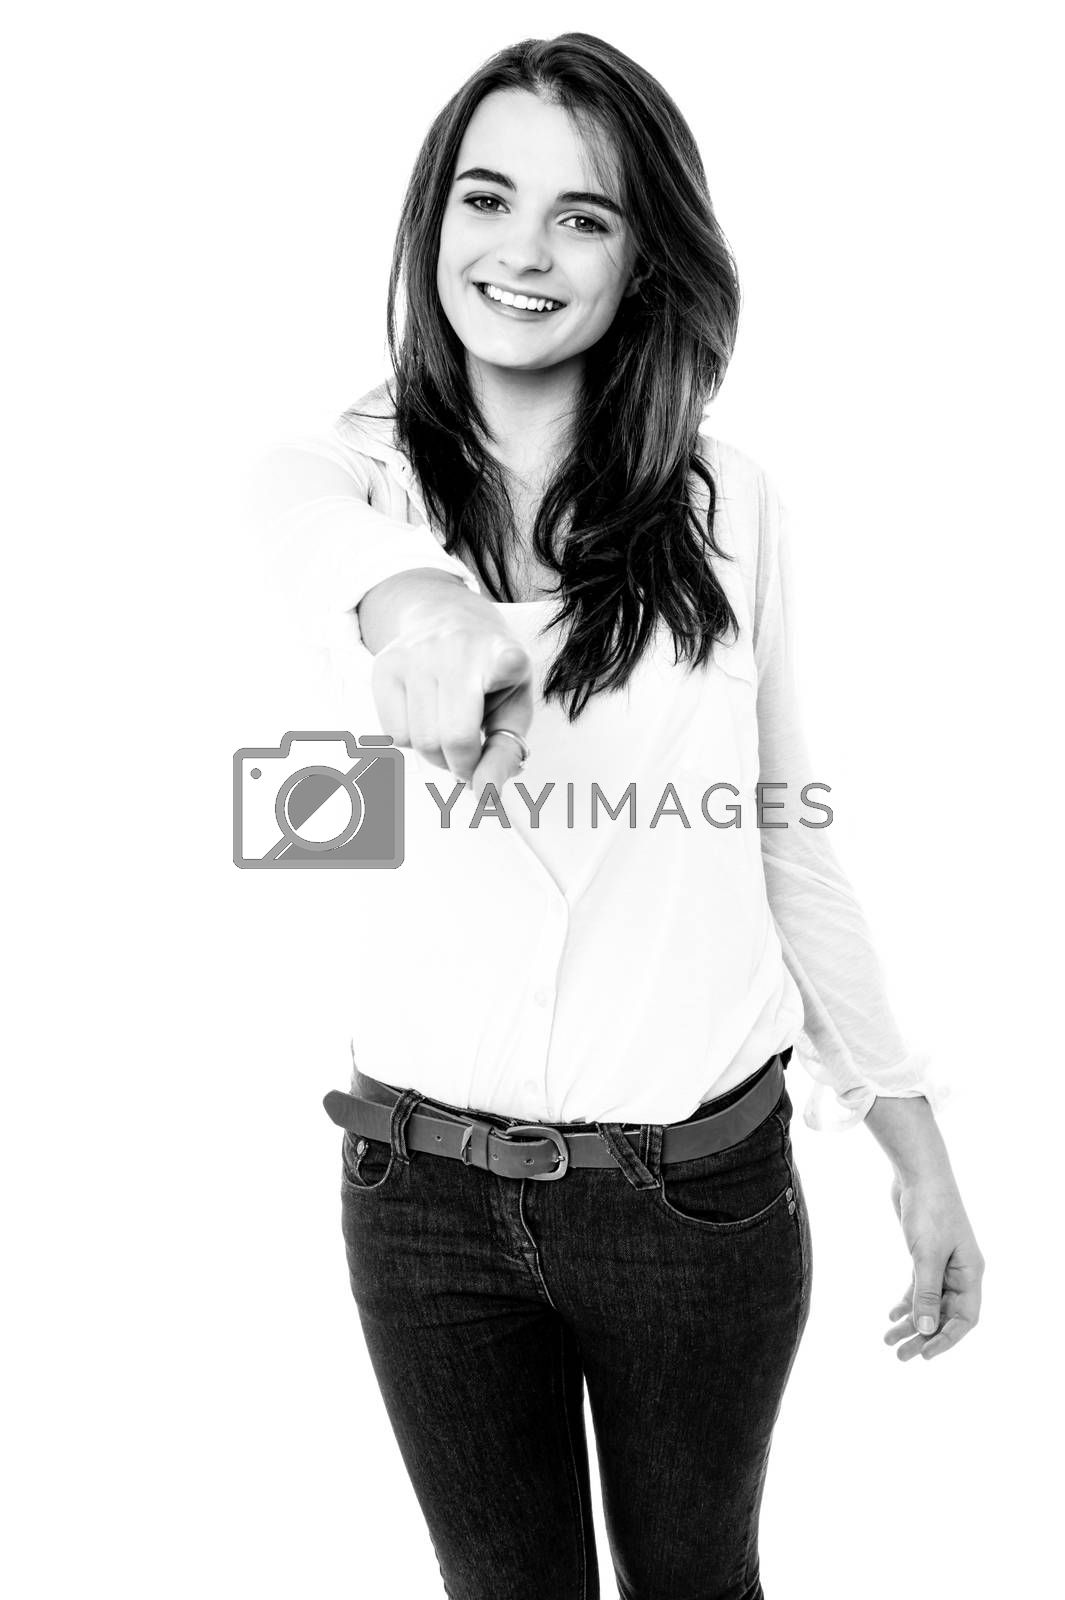 Black and white image of a girl pointing her finger